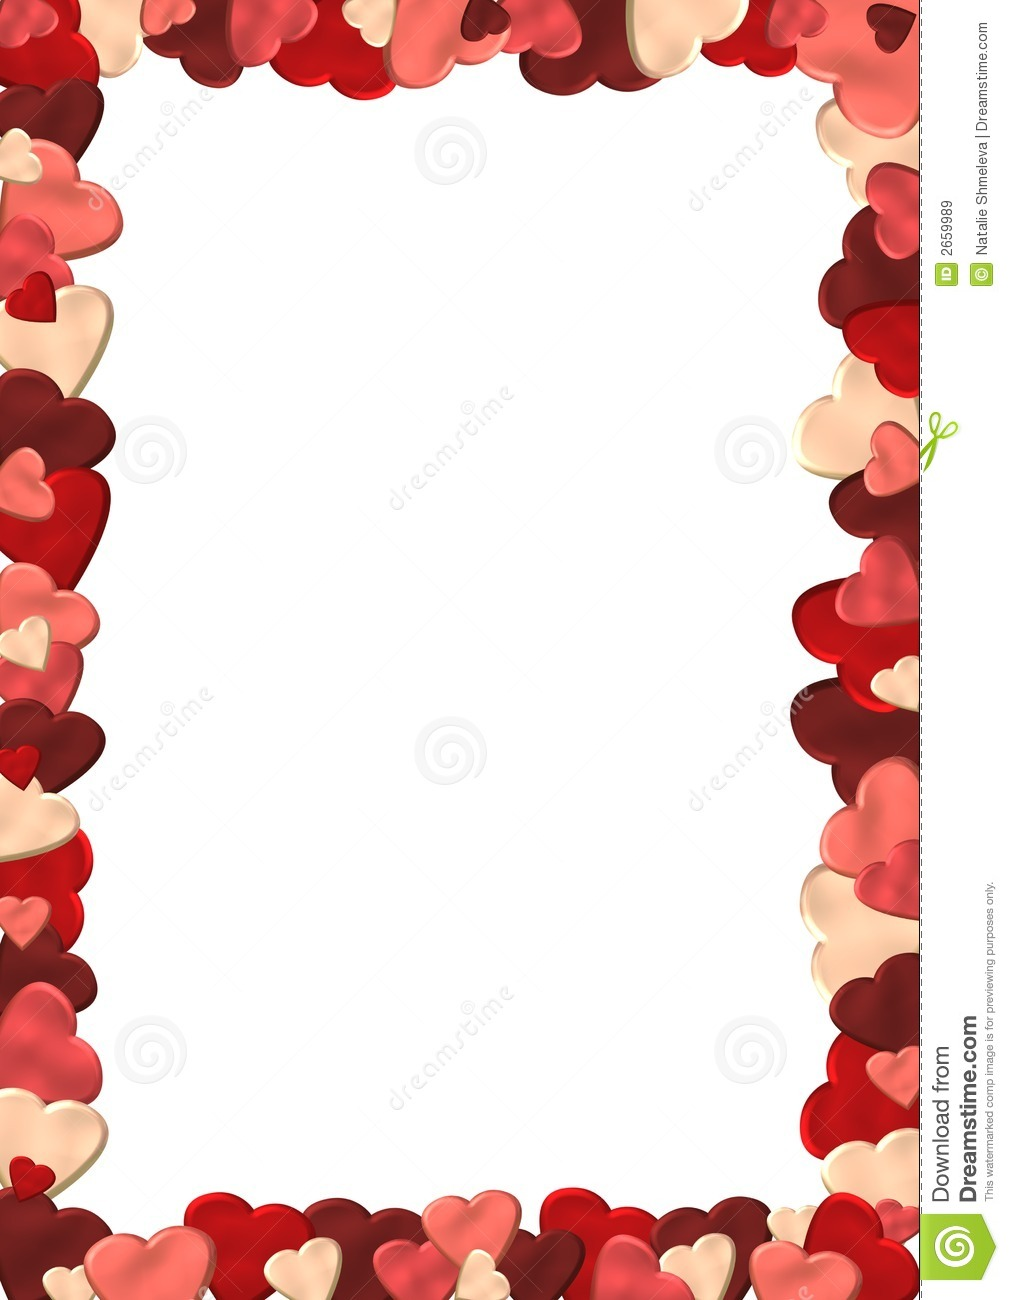 Heart frame stock image. Image of ornate, light, ornamental - 2659989